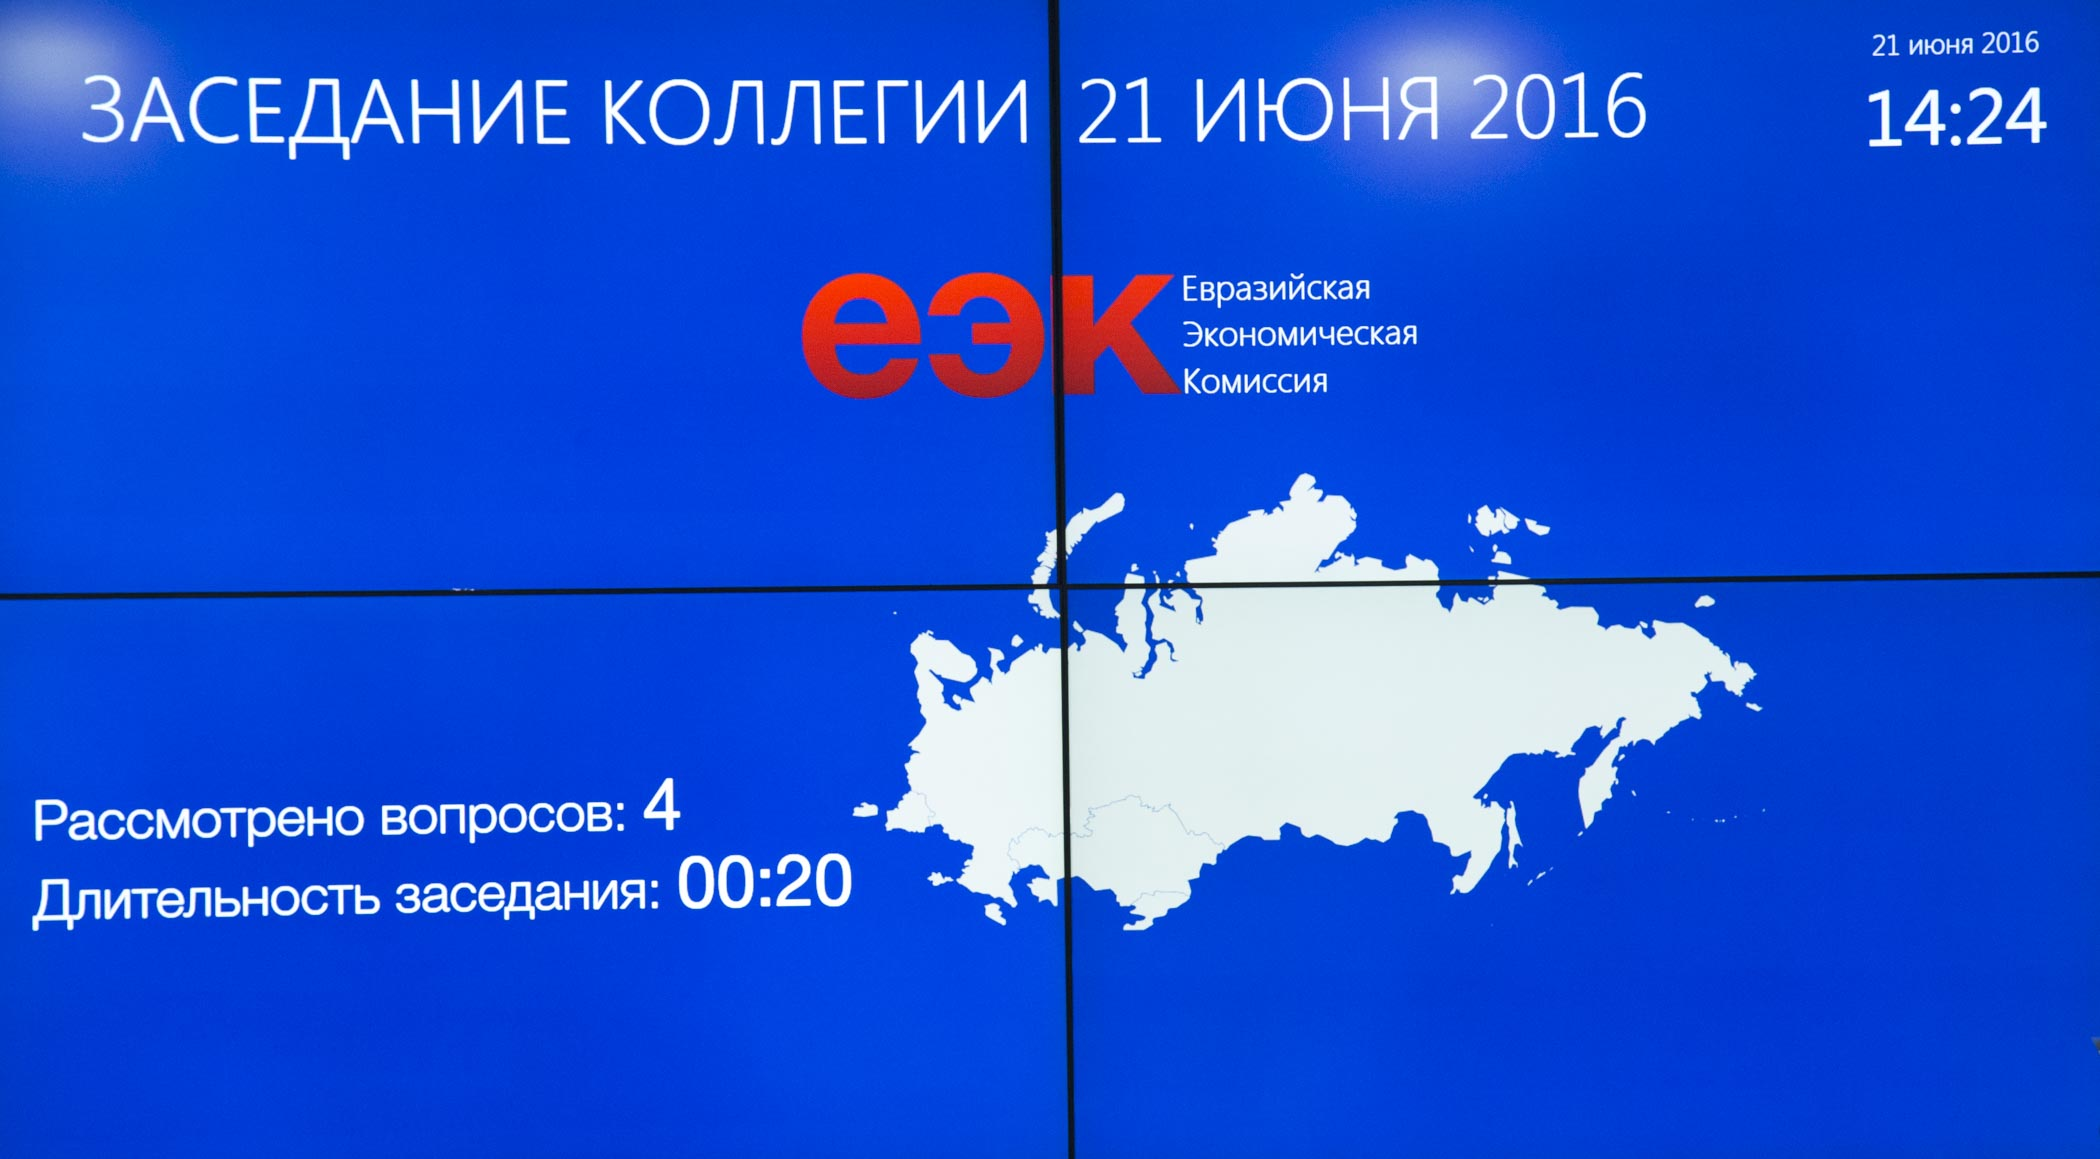 The Eec Establishes Tariff Quota Volumes Within The Framework Of The